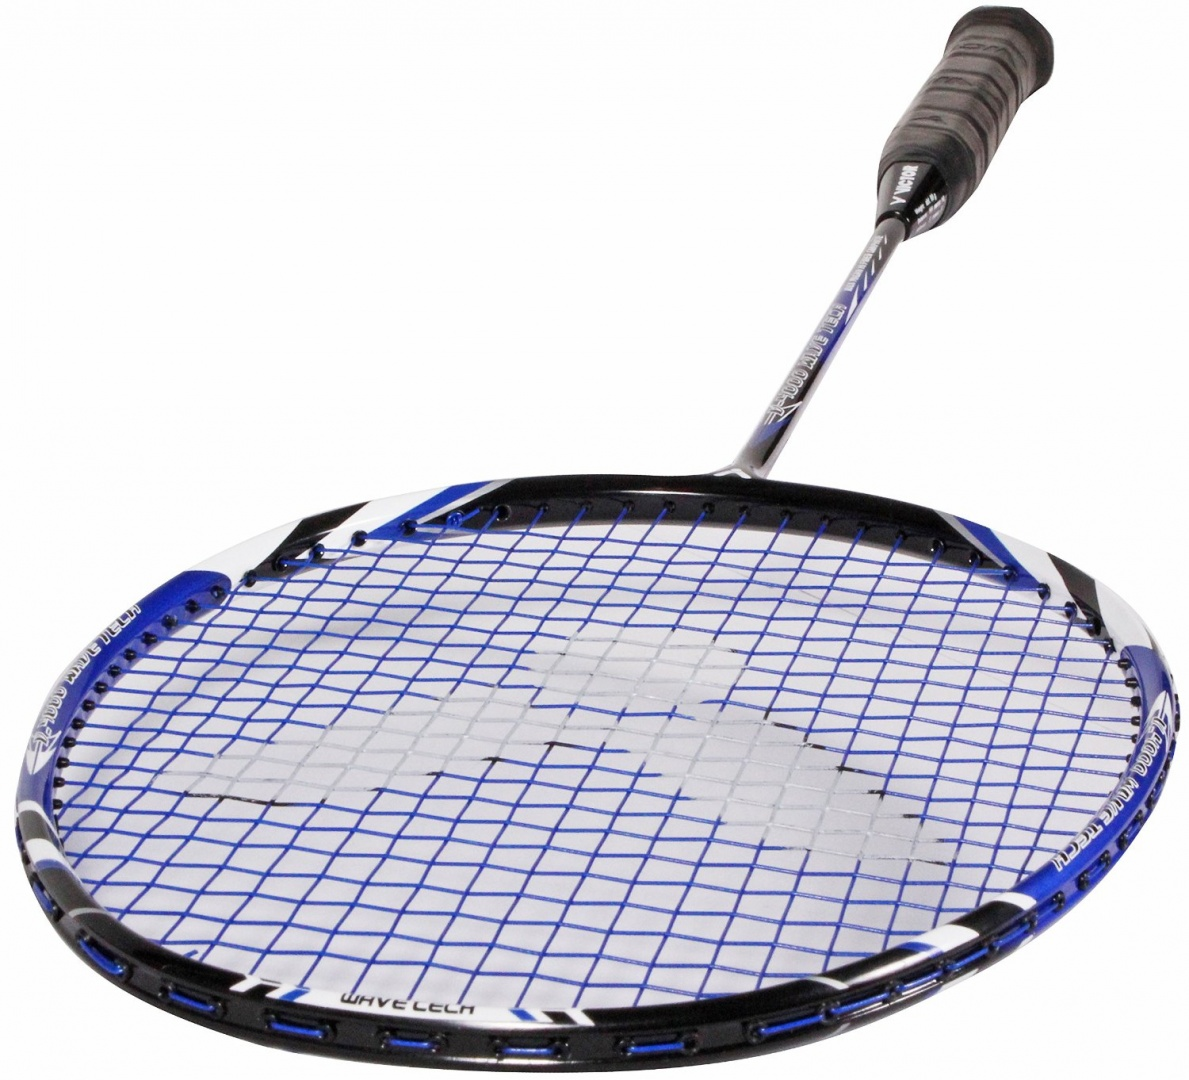 single or as set of 2 with balls Victor V-4000 Wave Tech badminton racquet